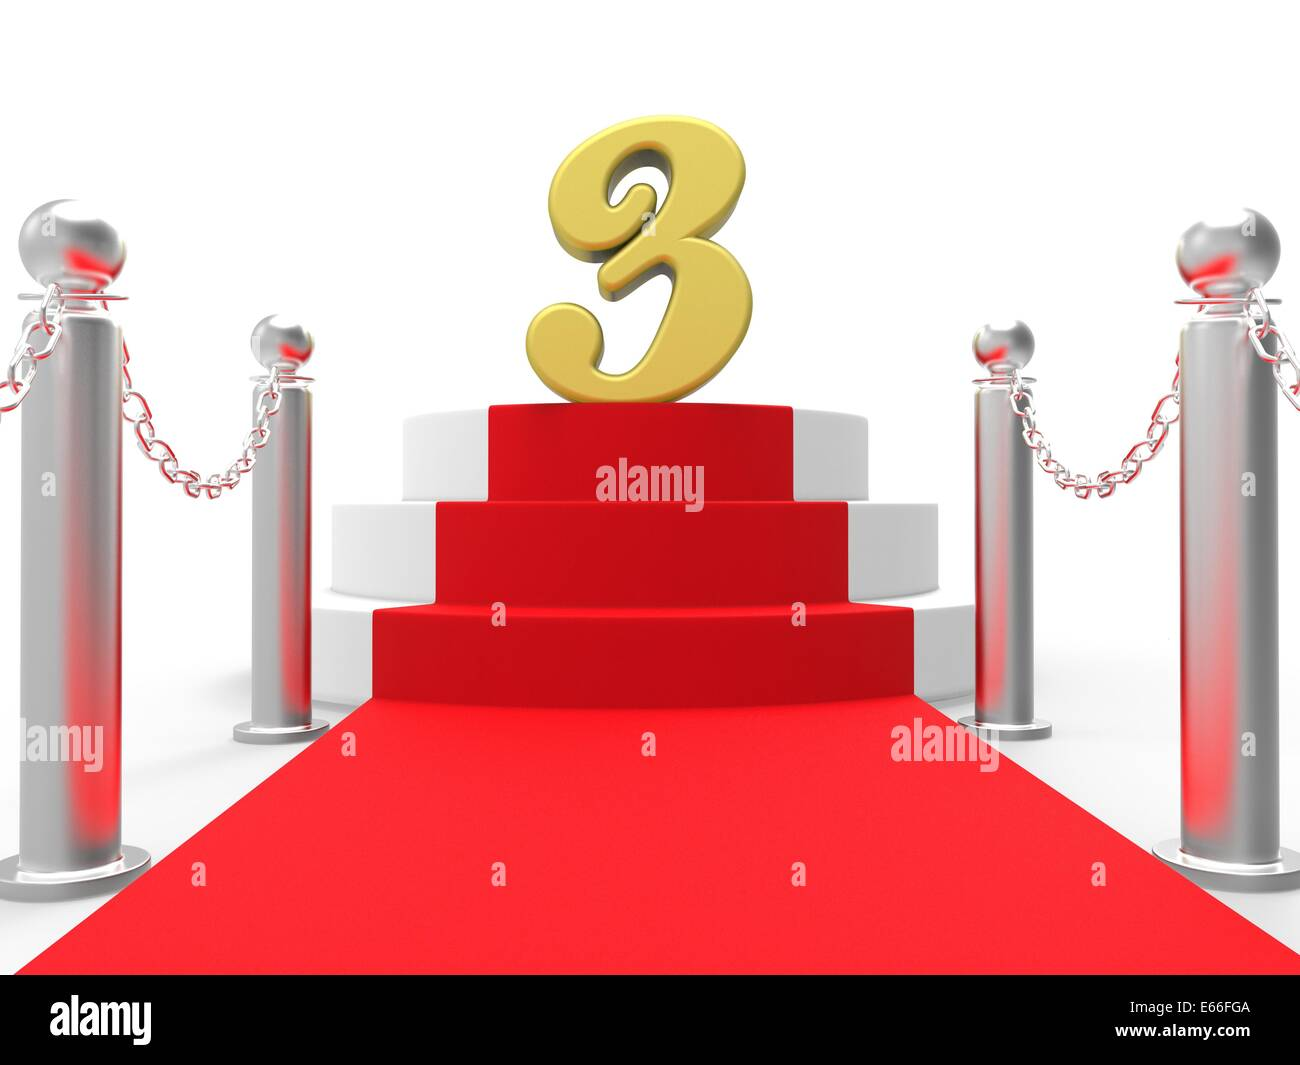 Golden three on red carpet meaning shiny stage or anniversary golden three on red carpet meaning shiny stage or anniversary party buycottarizona